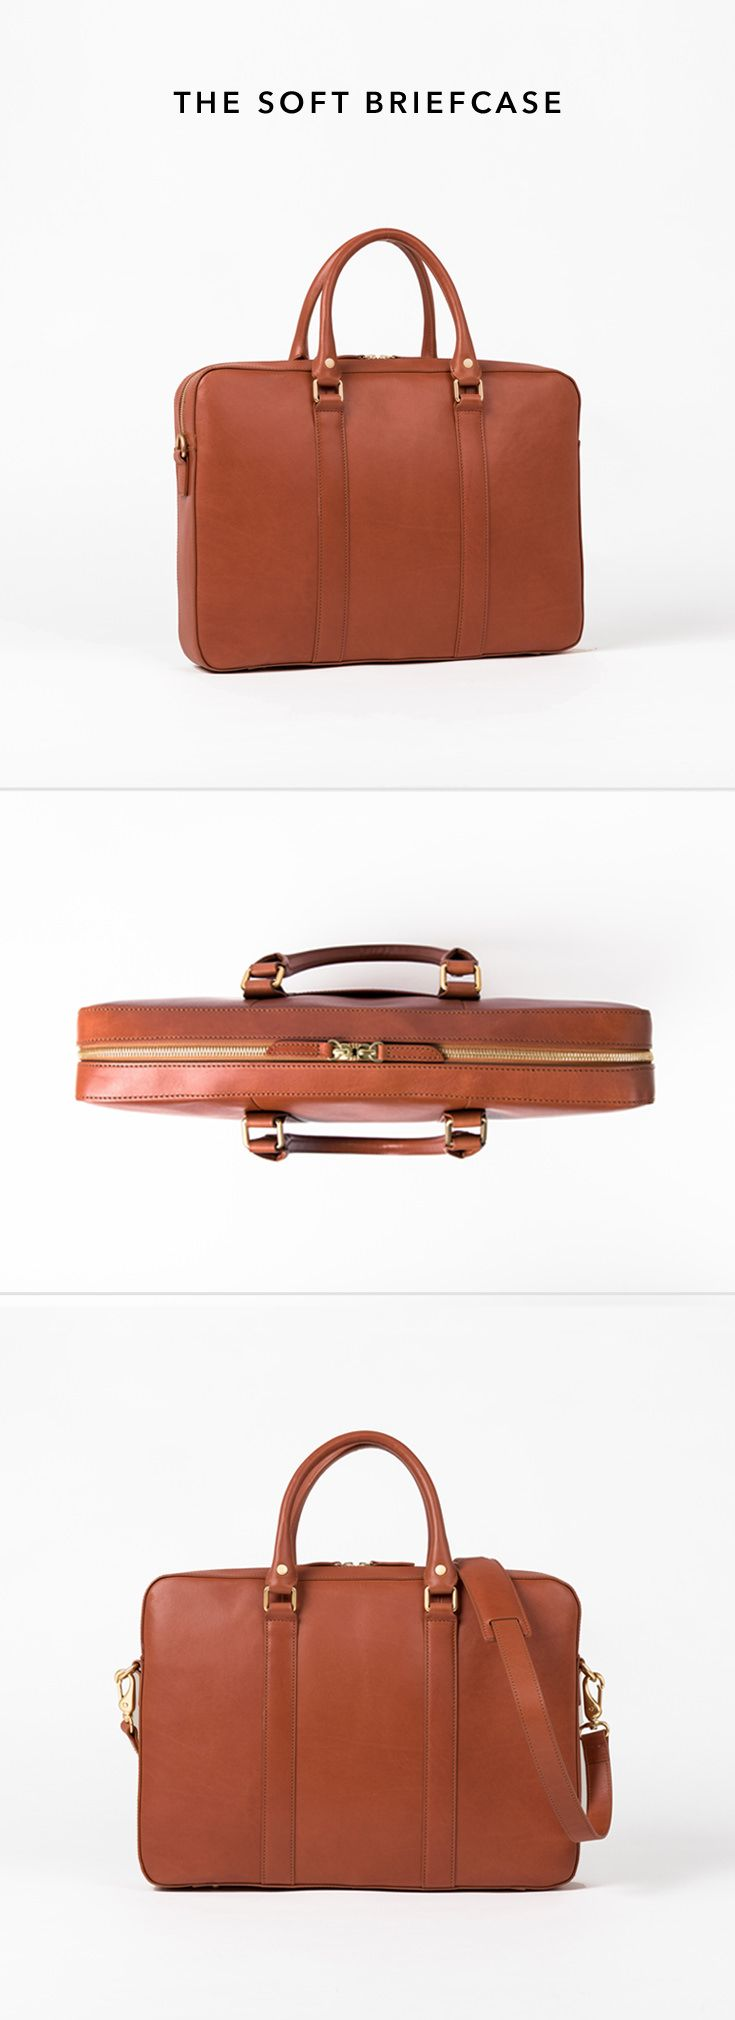 Fine leather goods without the luxury markup: A slim leather briefcase fit for the boardroom and the neighborhood café. 100% full grain vegetable-tanned leather.